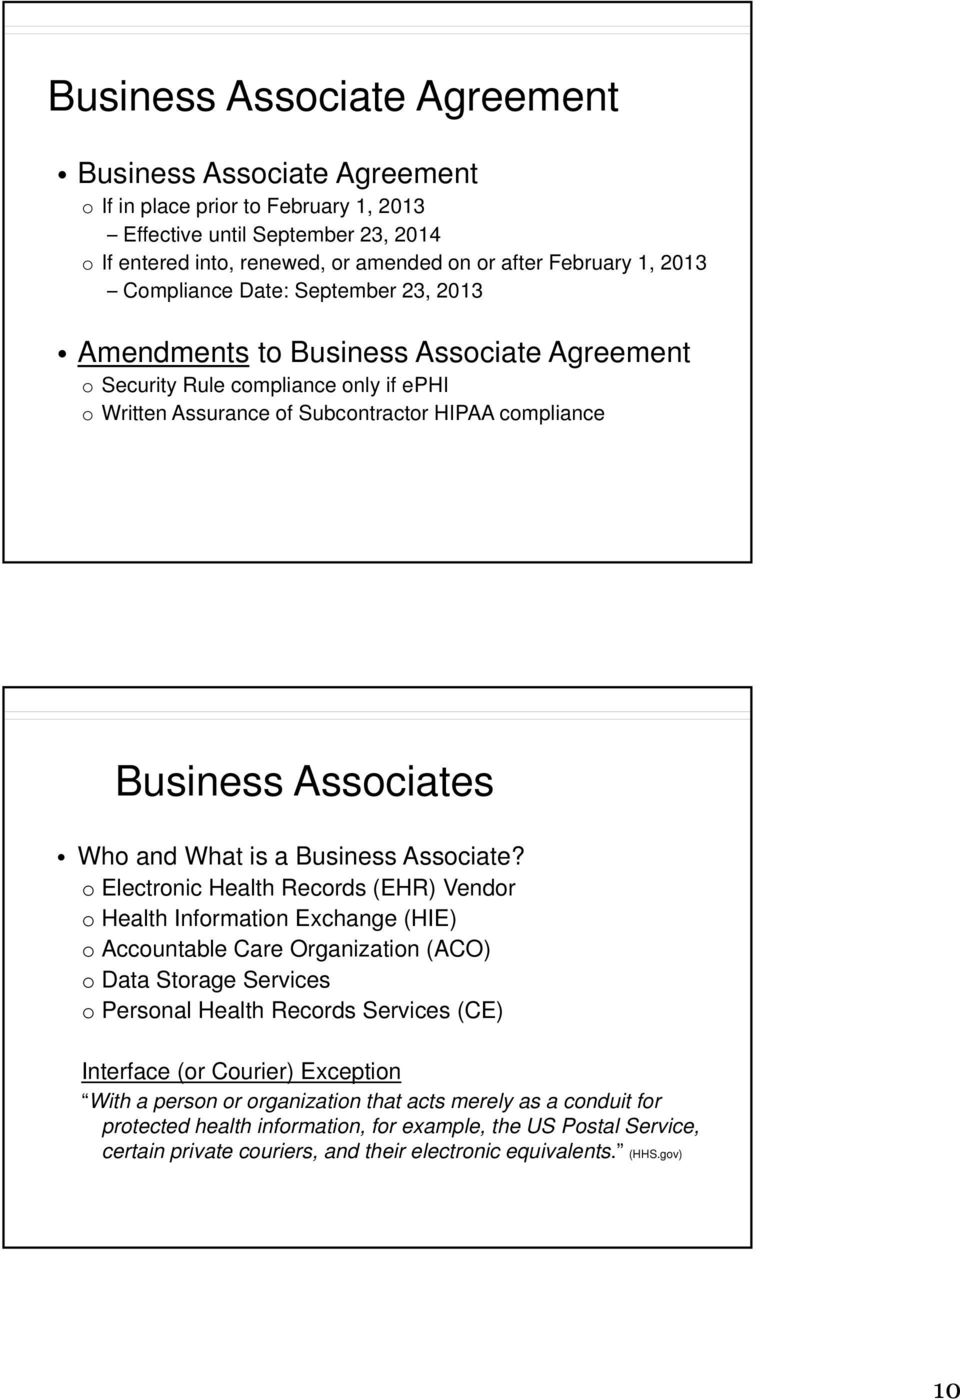 Who and What is a Business Associate?